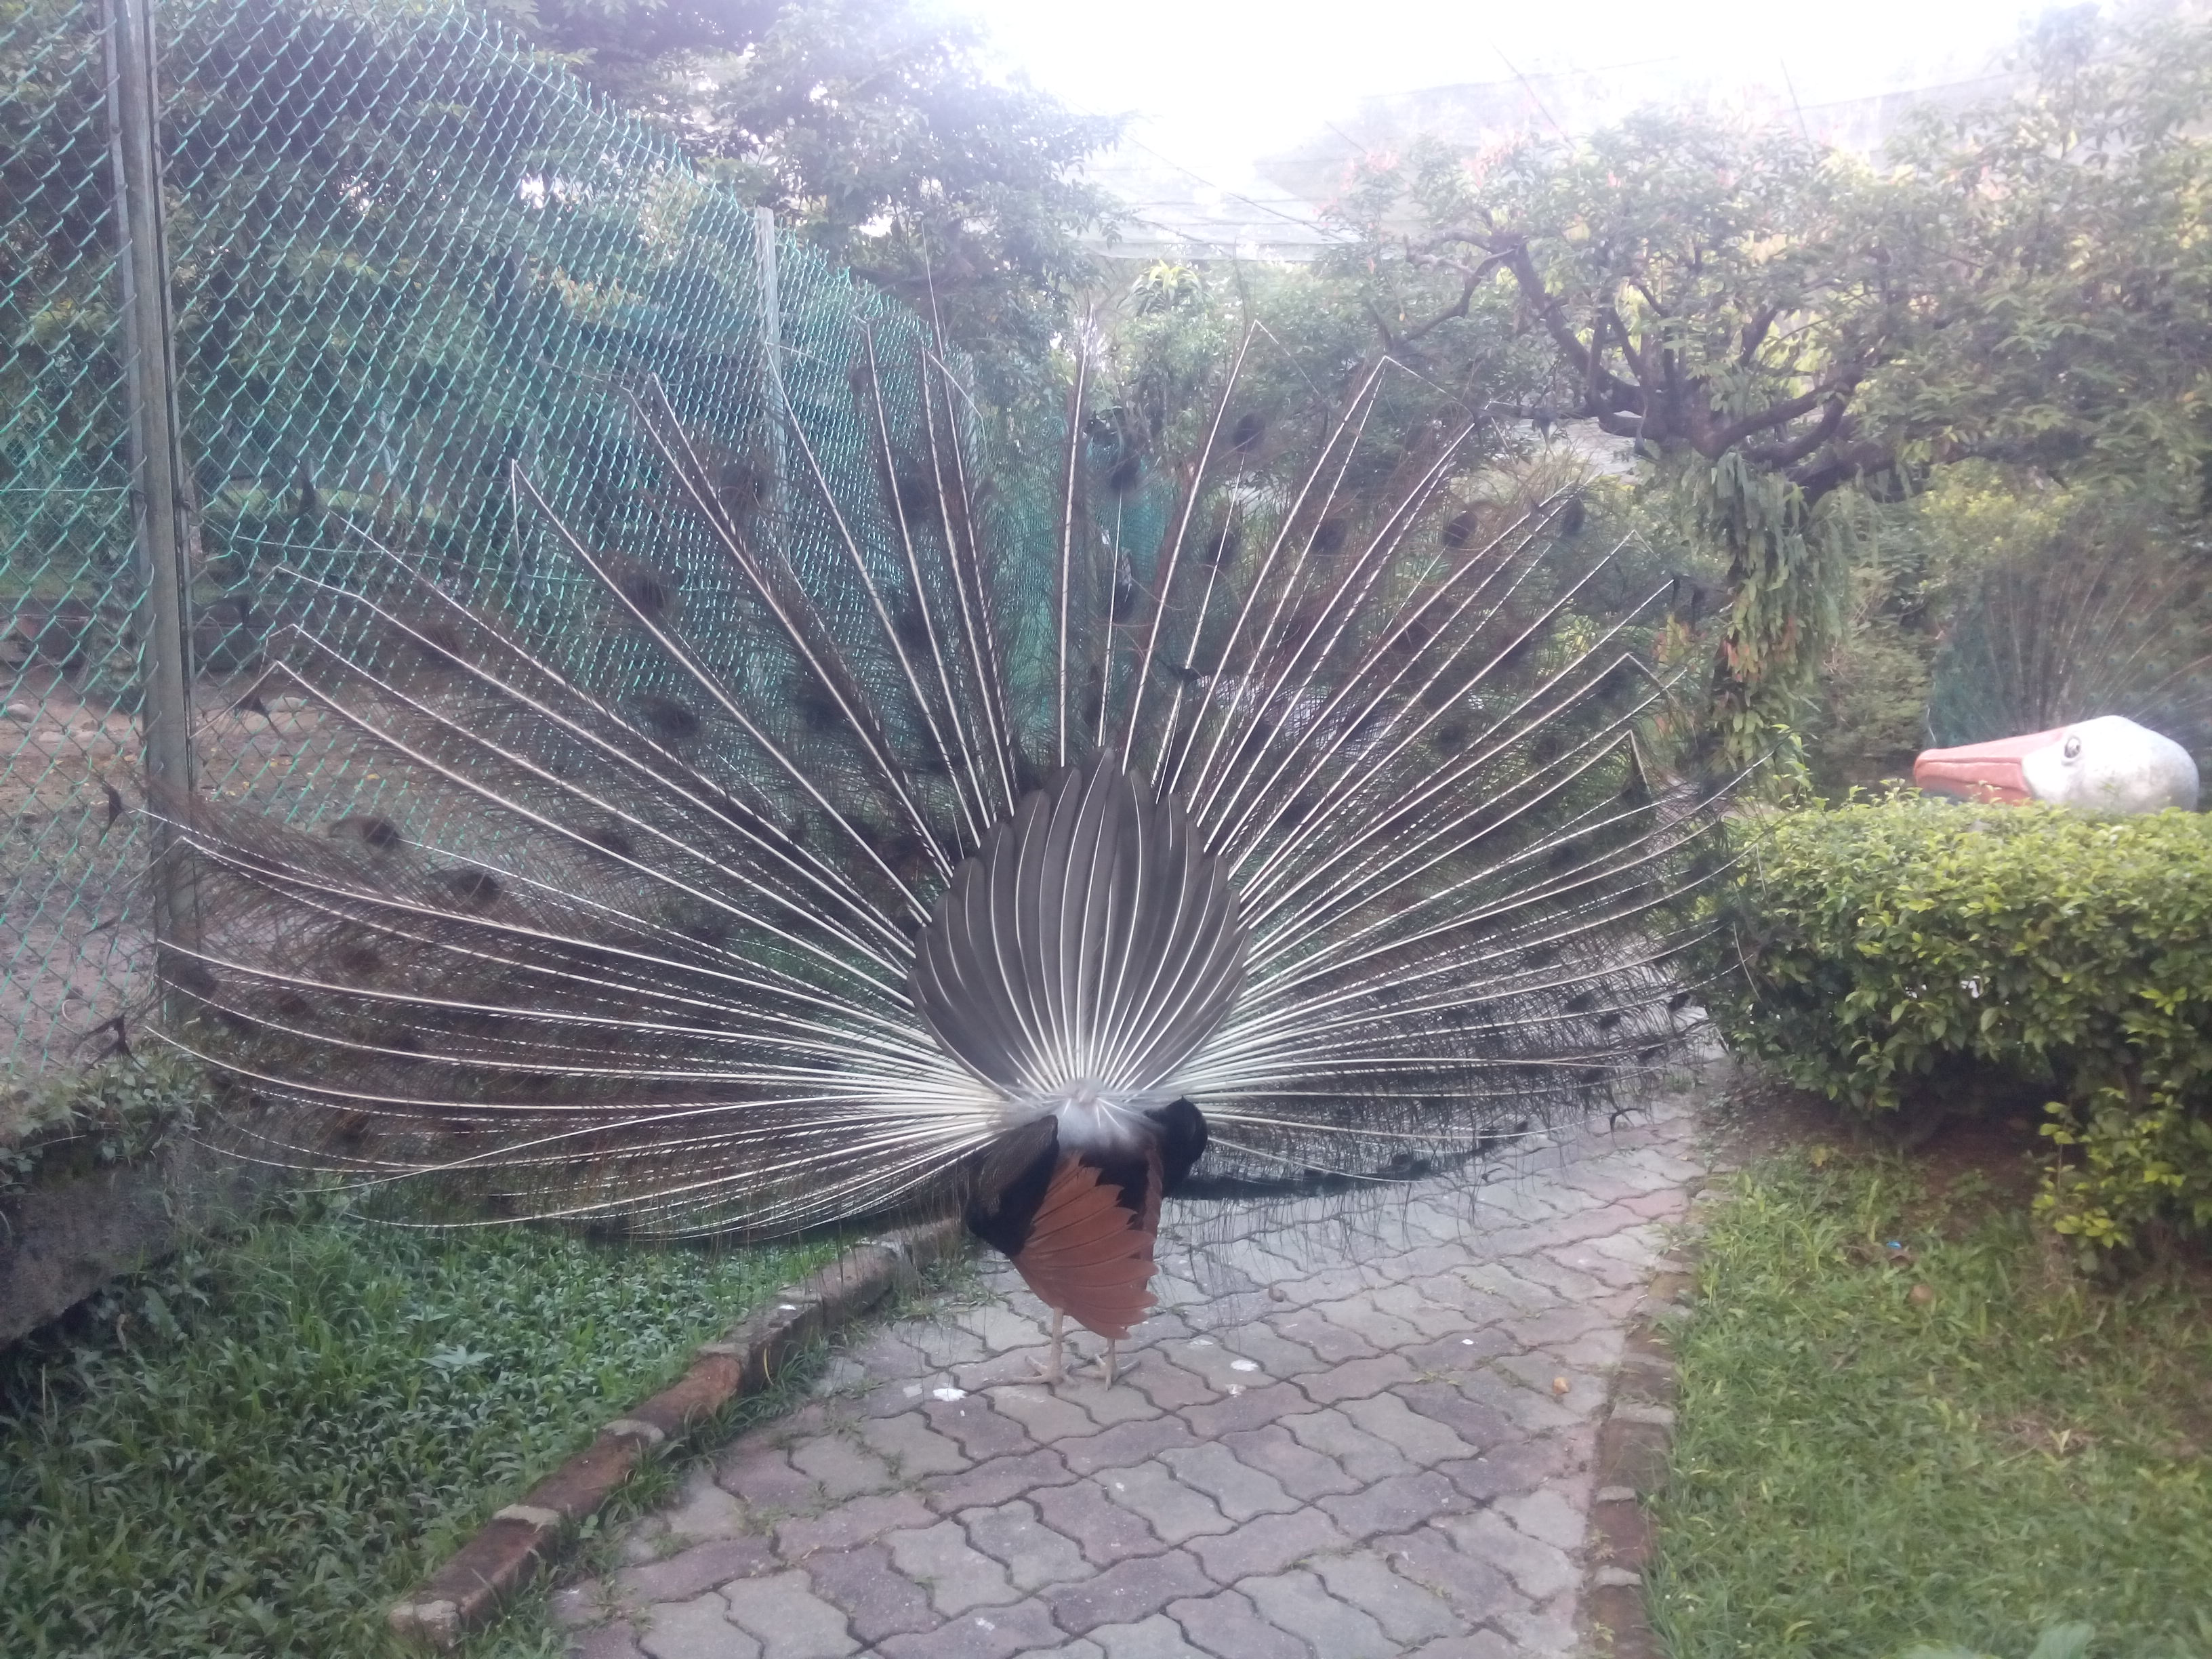 A peacock with its feathers open from behind